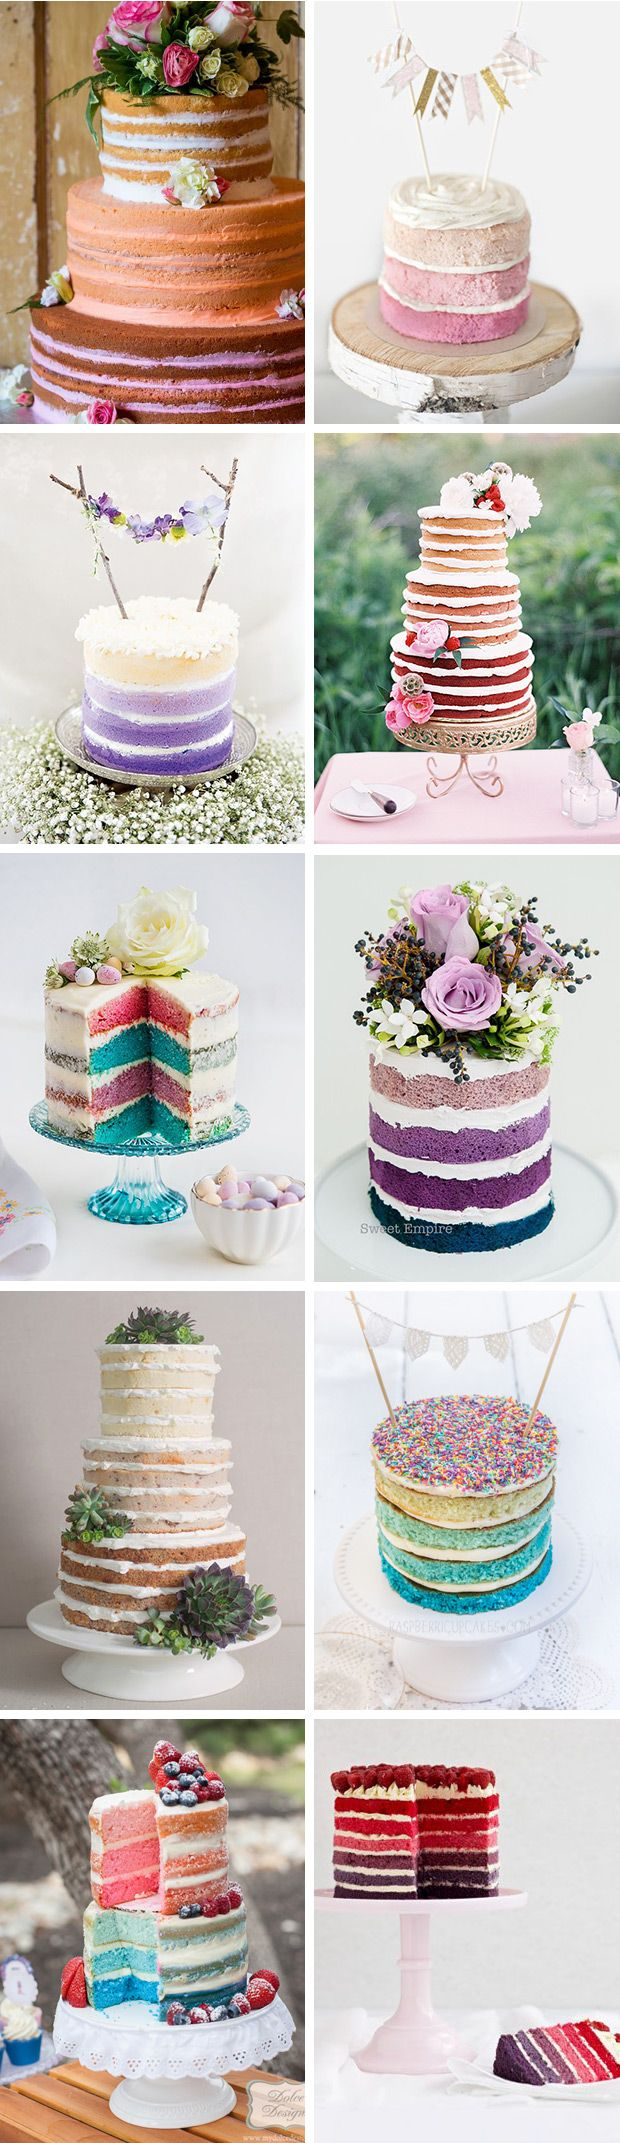 Let them eat cake rustic wedding chic - The New Rustic Cake Trend Naked Ombre Wedding Cakes